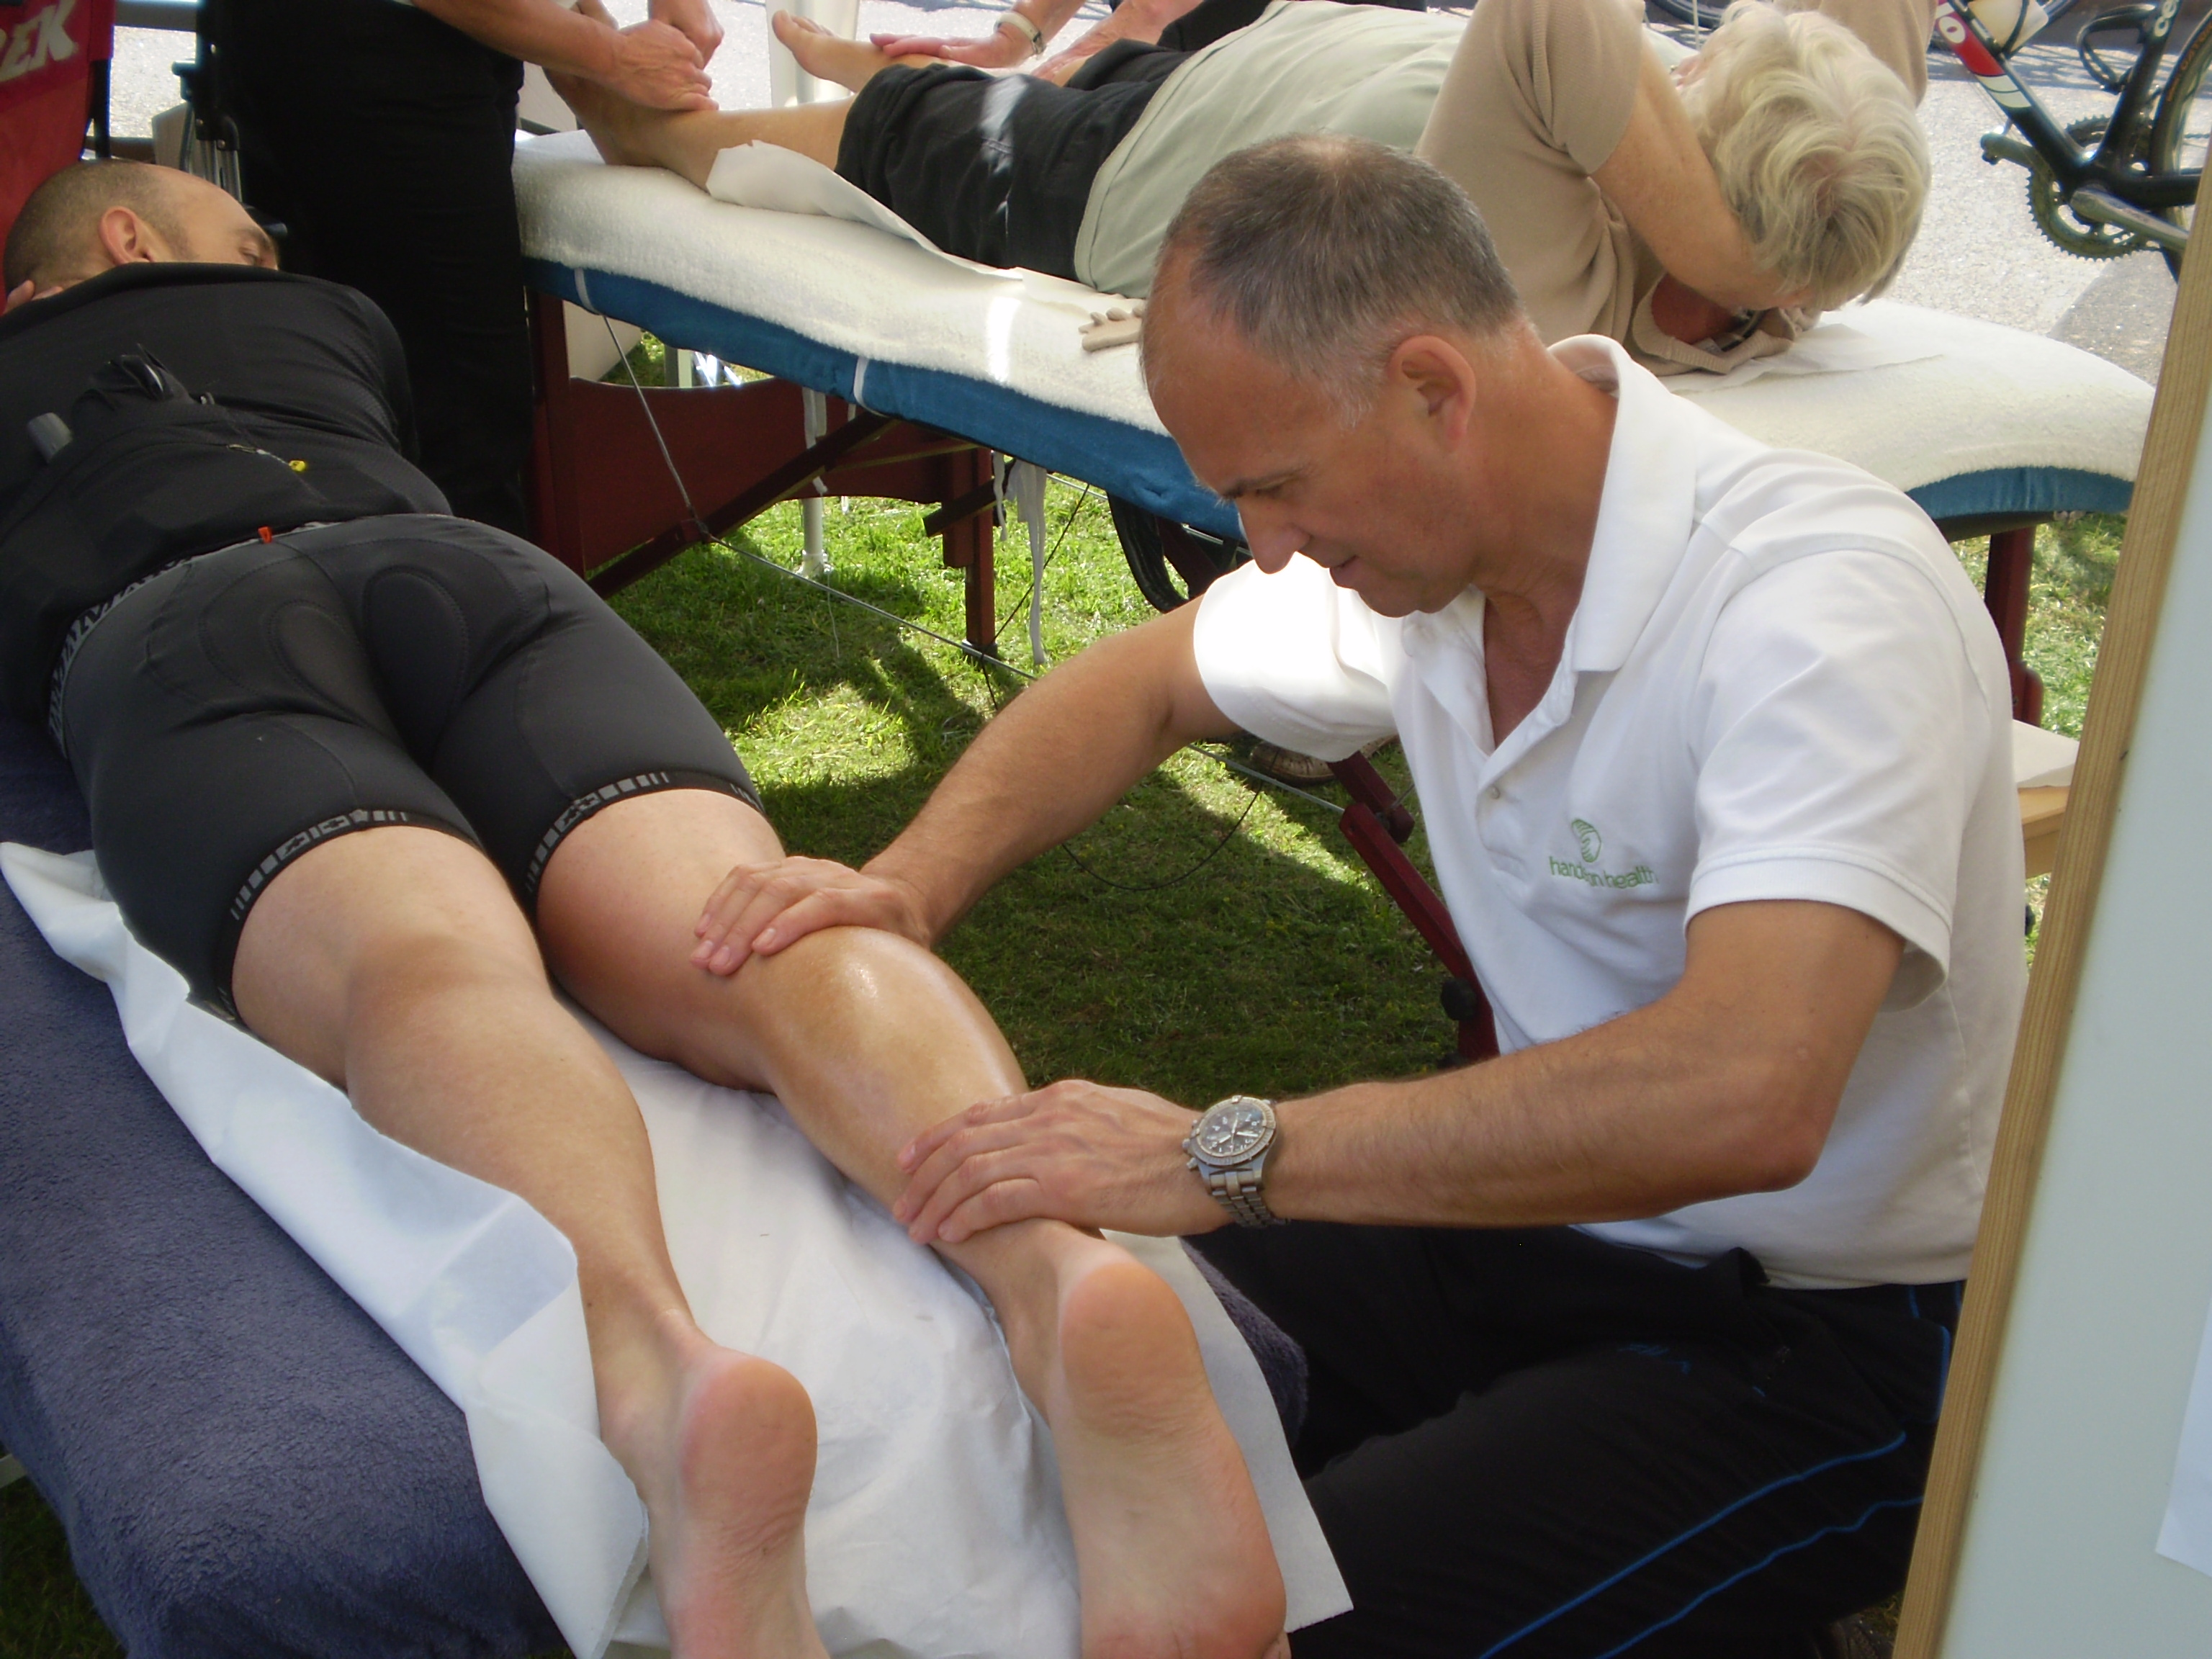 Athlete having calf massaged after an event